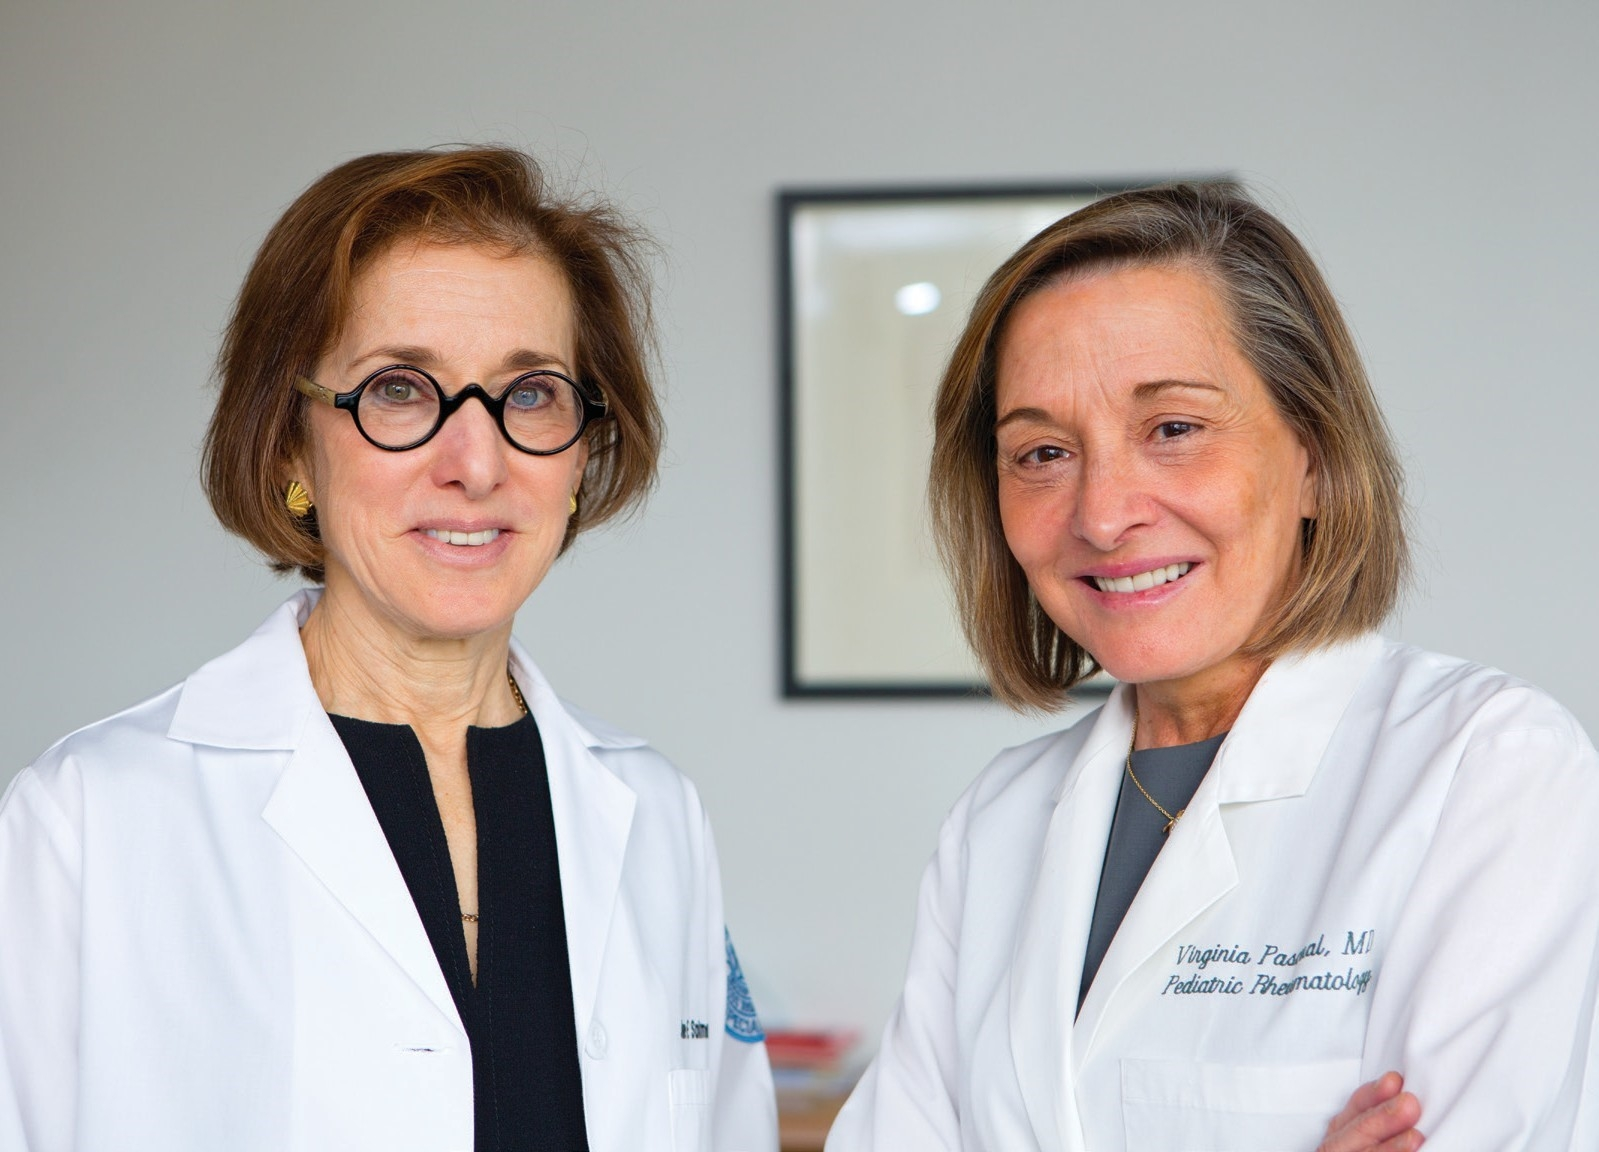 Dr. Jane Salmon (left) and Dr. Virginia Pascual. Credit: John Abbott